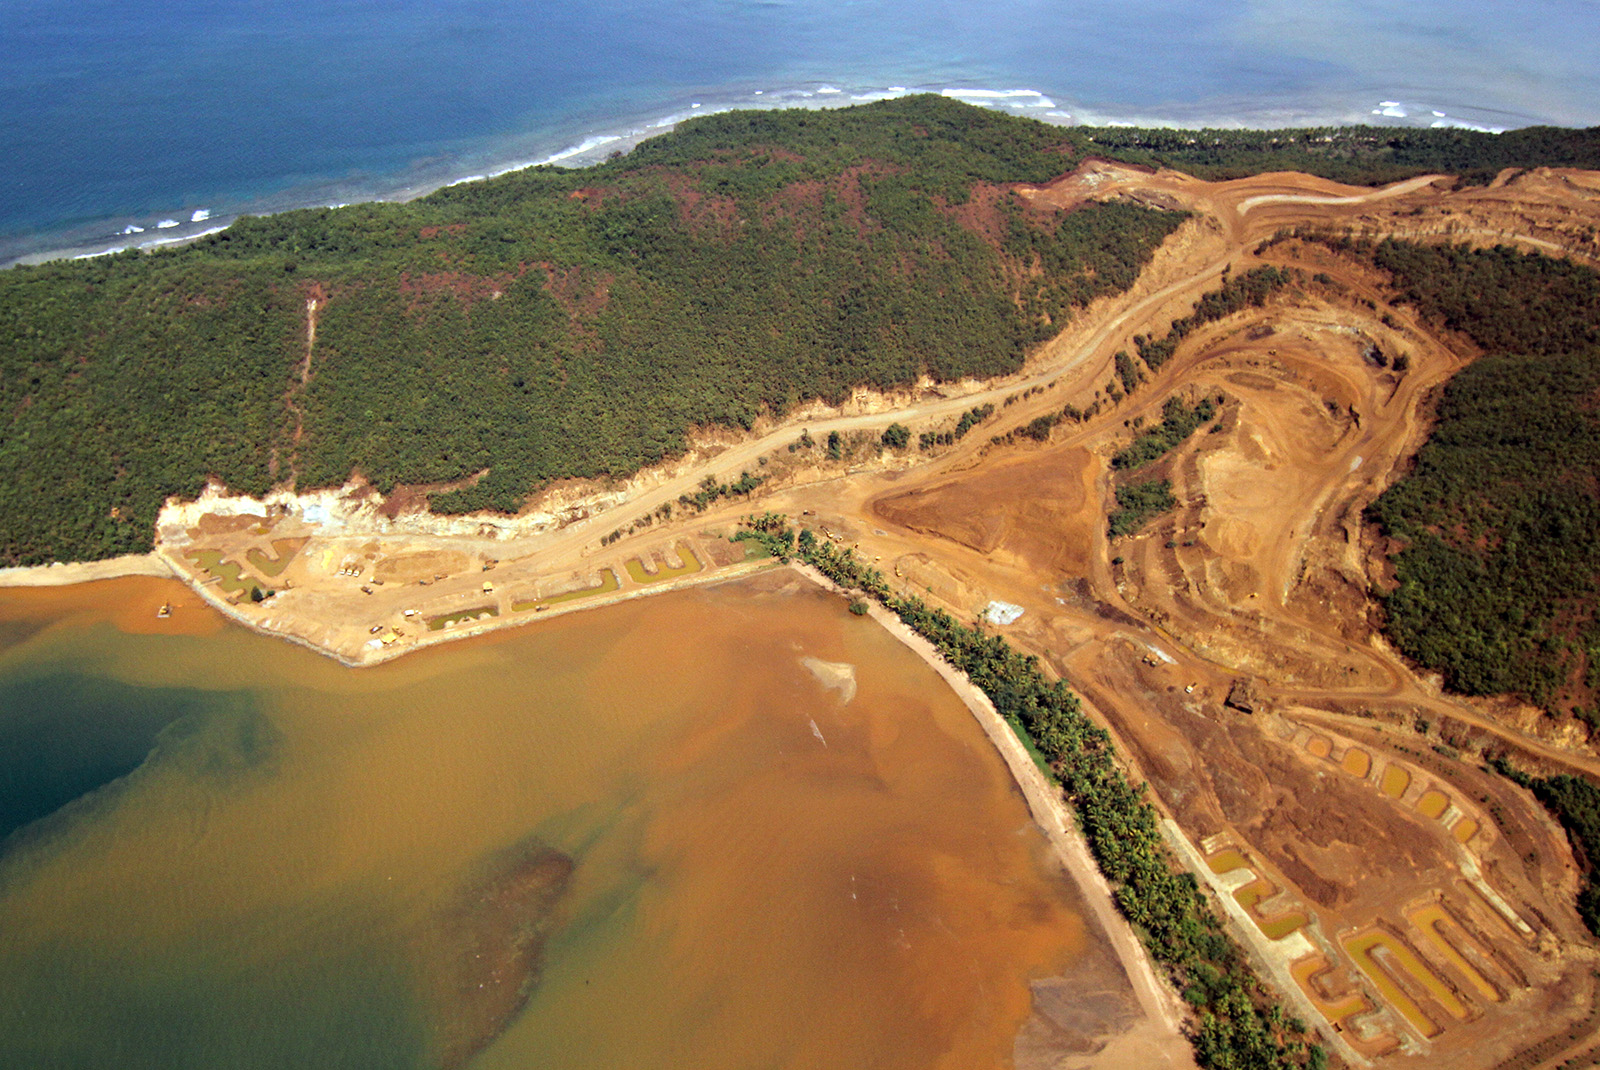 An assessment on the philippine mining